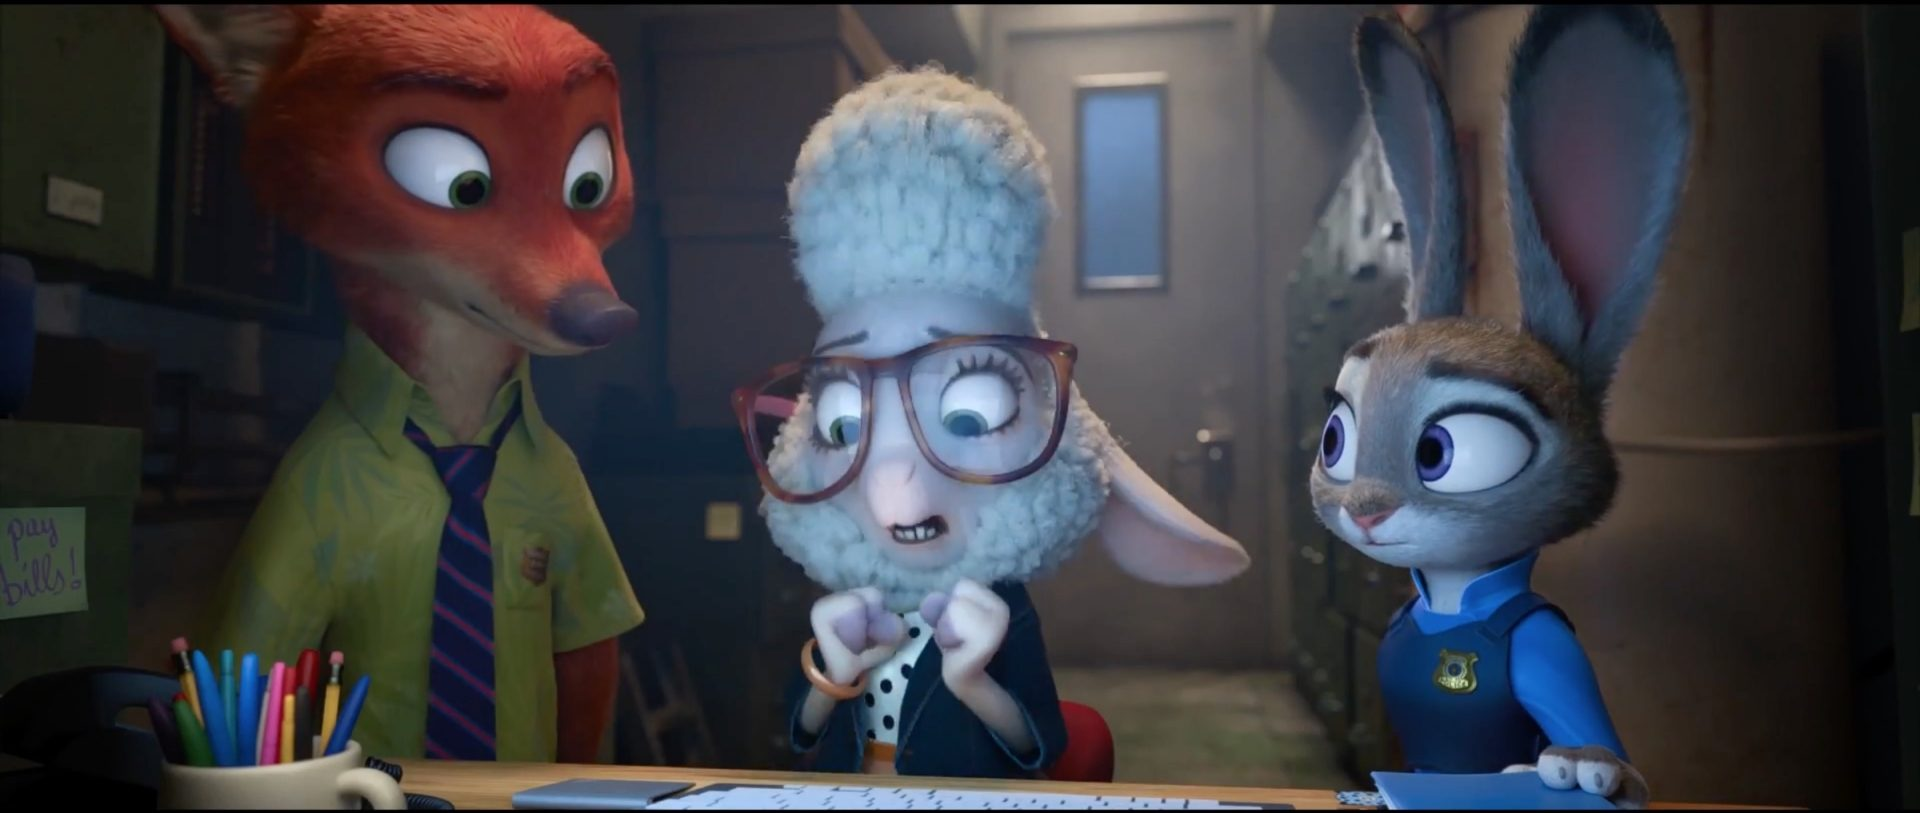 meet assistant mayor bellwether in this new zootopia promo clip in a